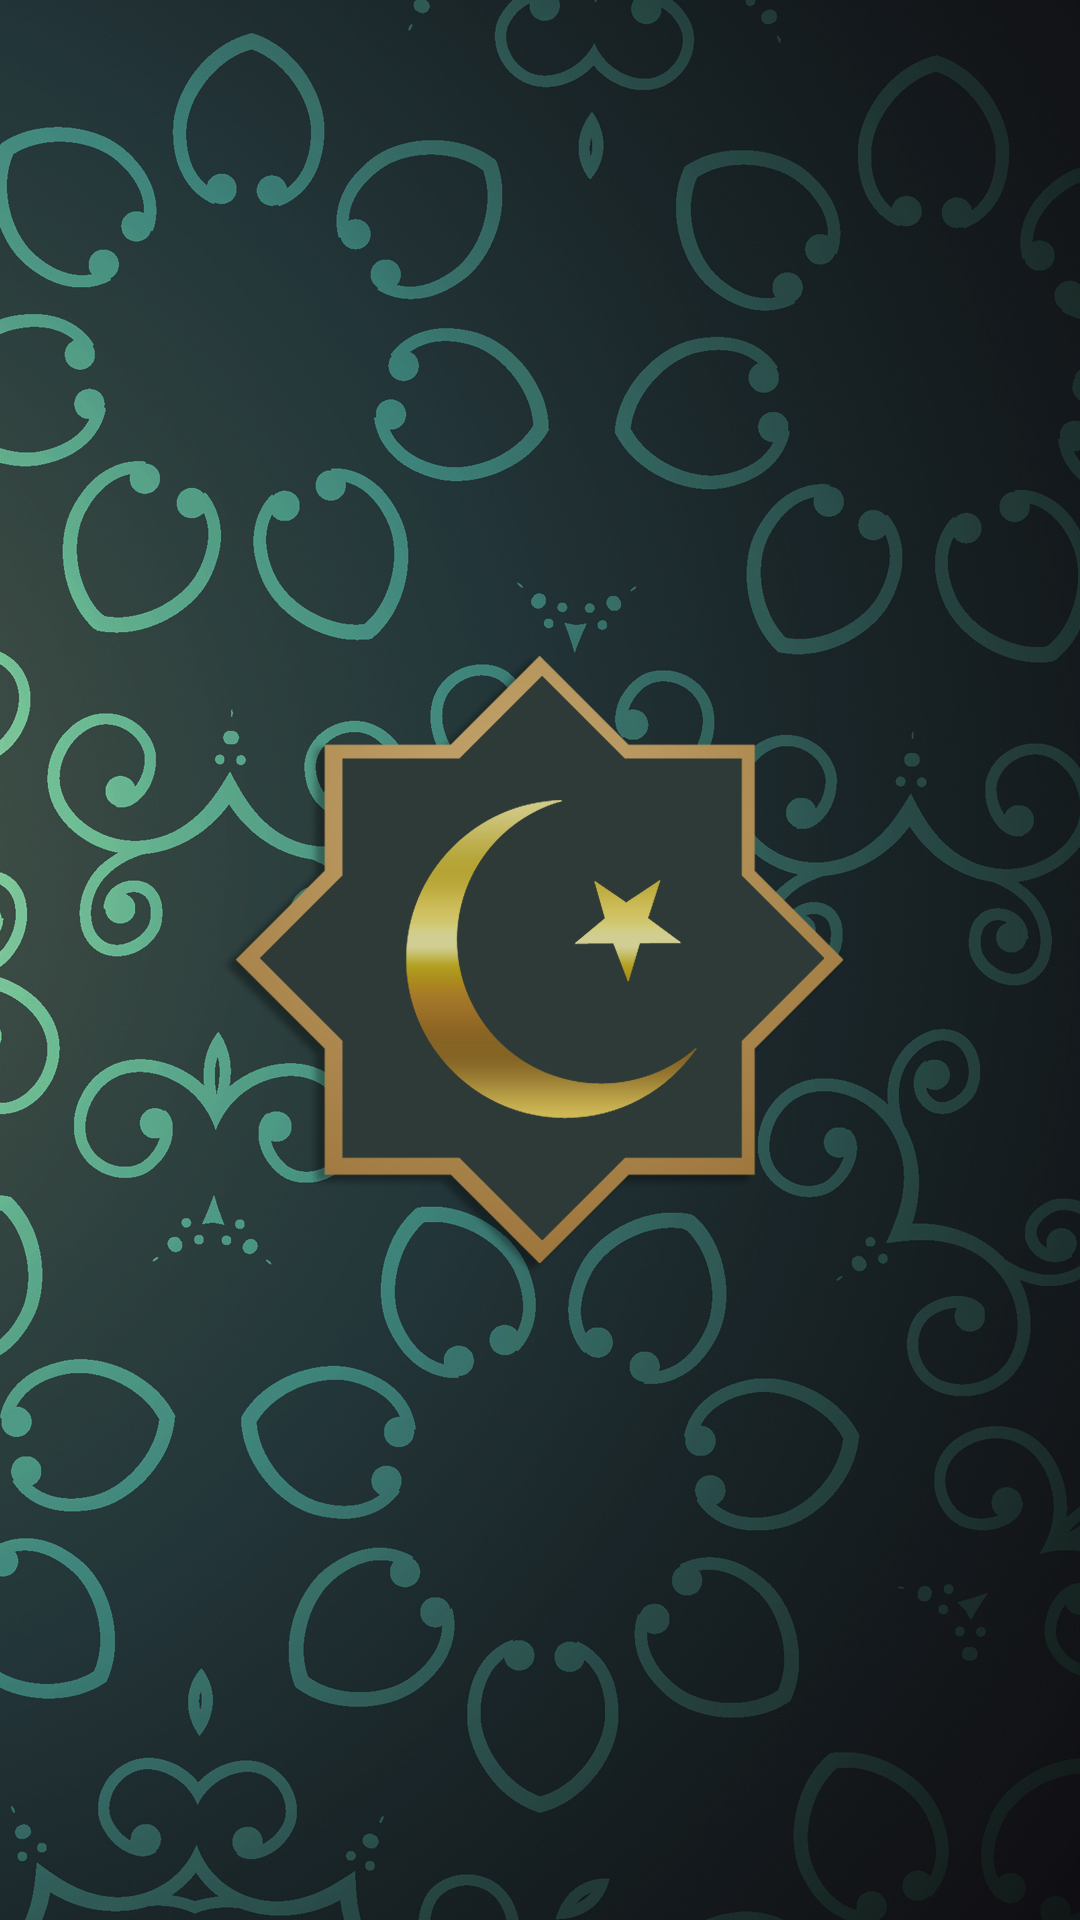 Free HD Islamic Green Phone Wallpaper...6658